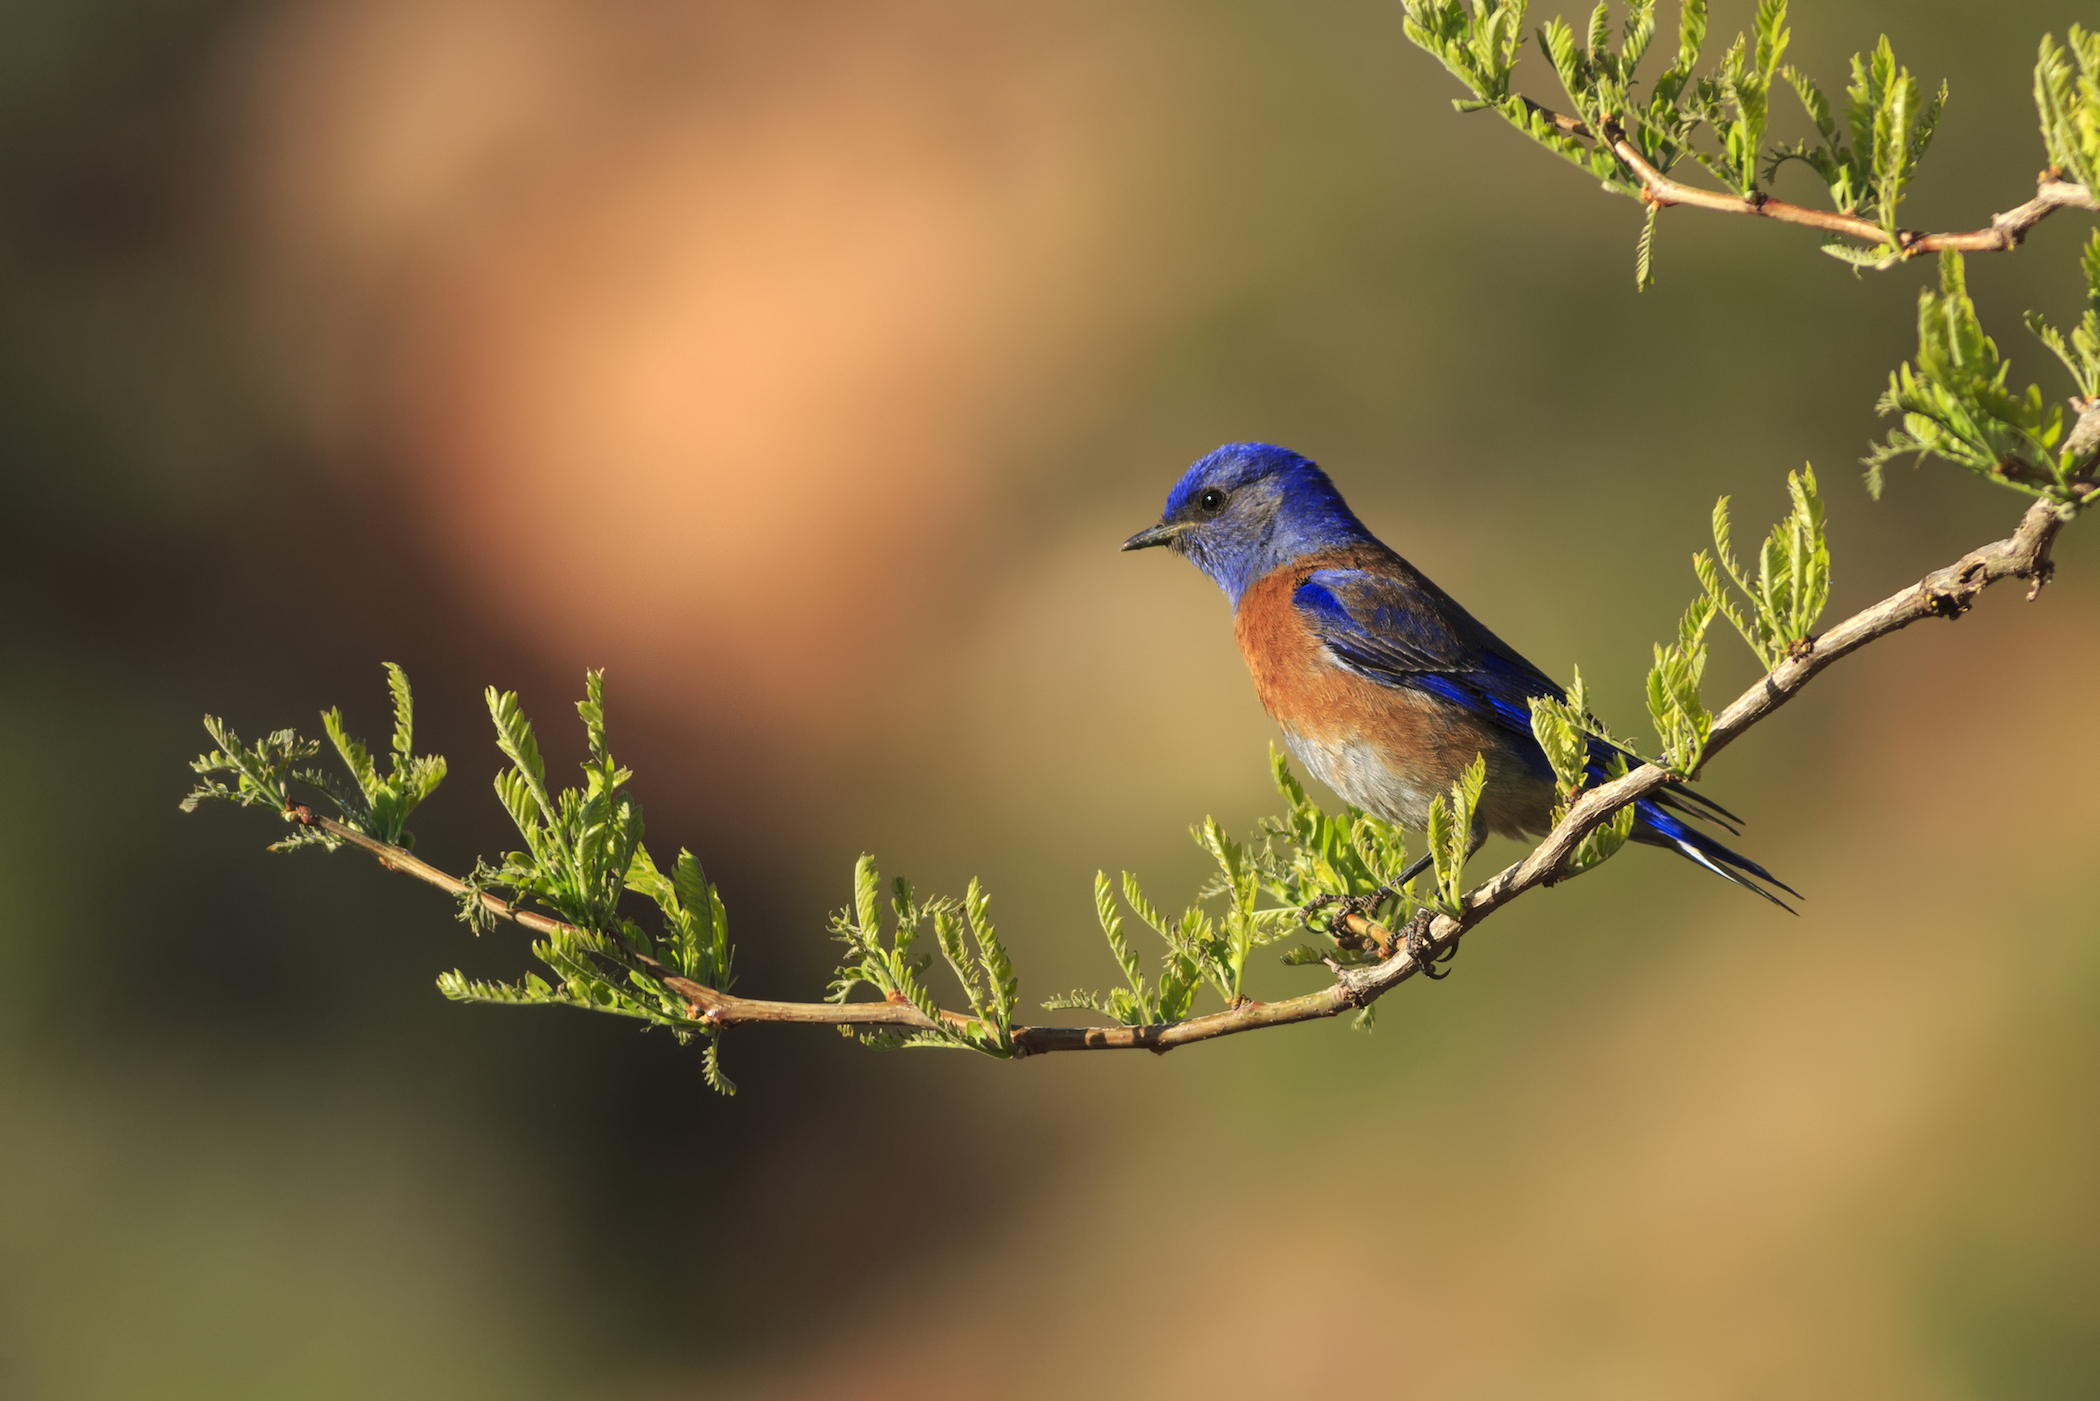 Birds that grow up around high levels of noise pollution have stunted growth and lay fewer eggs that hatch when nesting.